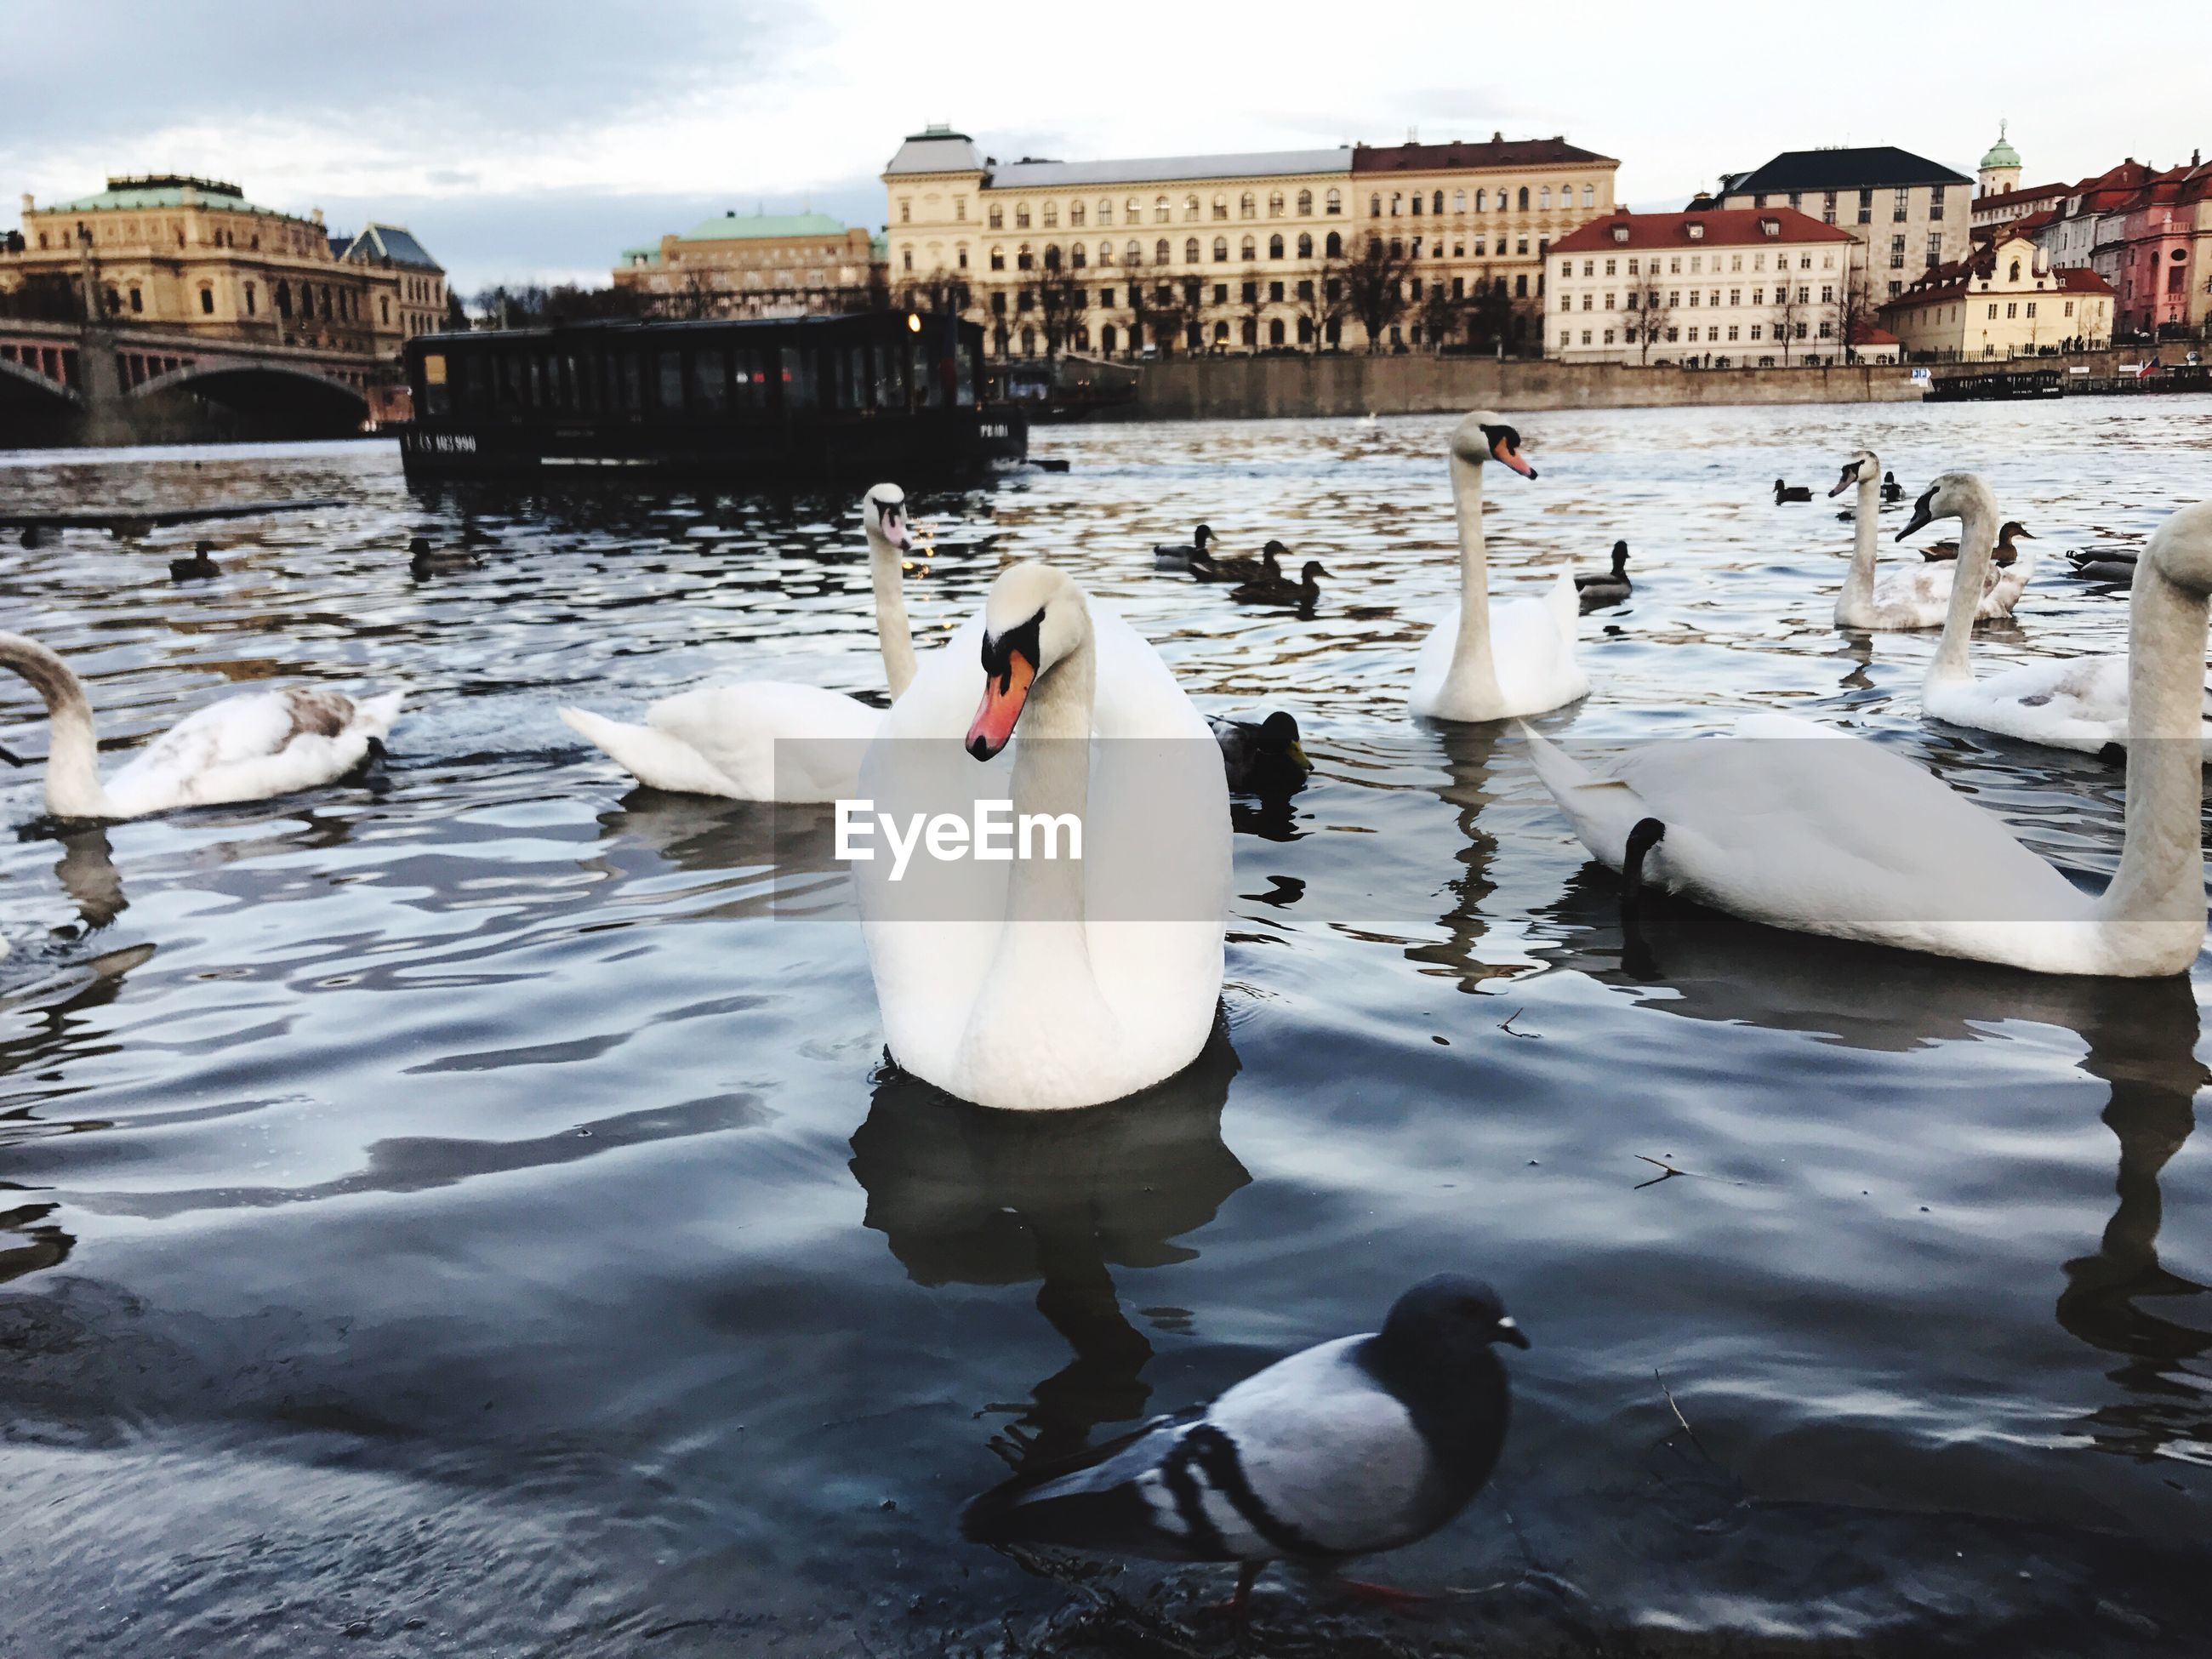 bird, swan, water, animal themes, animals in the wild, sky, outdoors, swimming, large group of animals, nature, architecture, day, no people